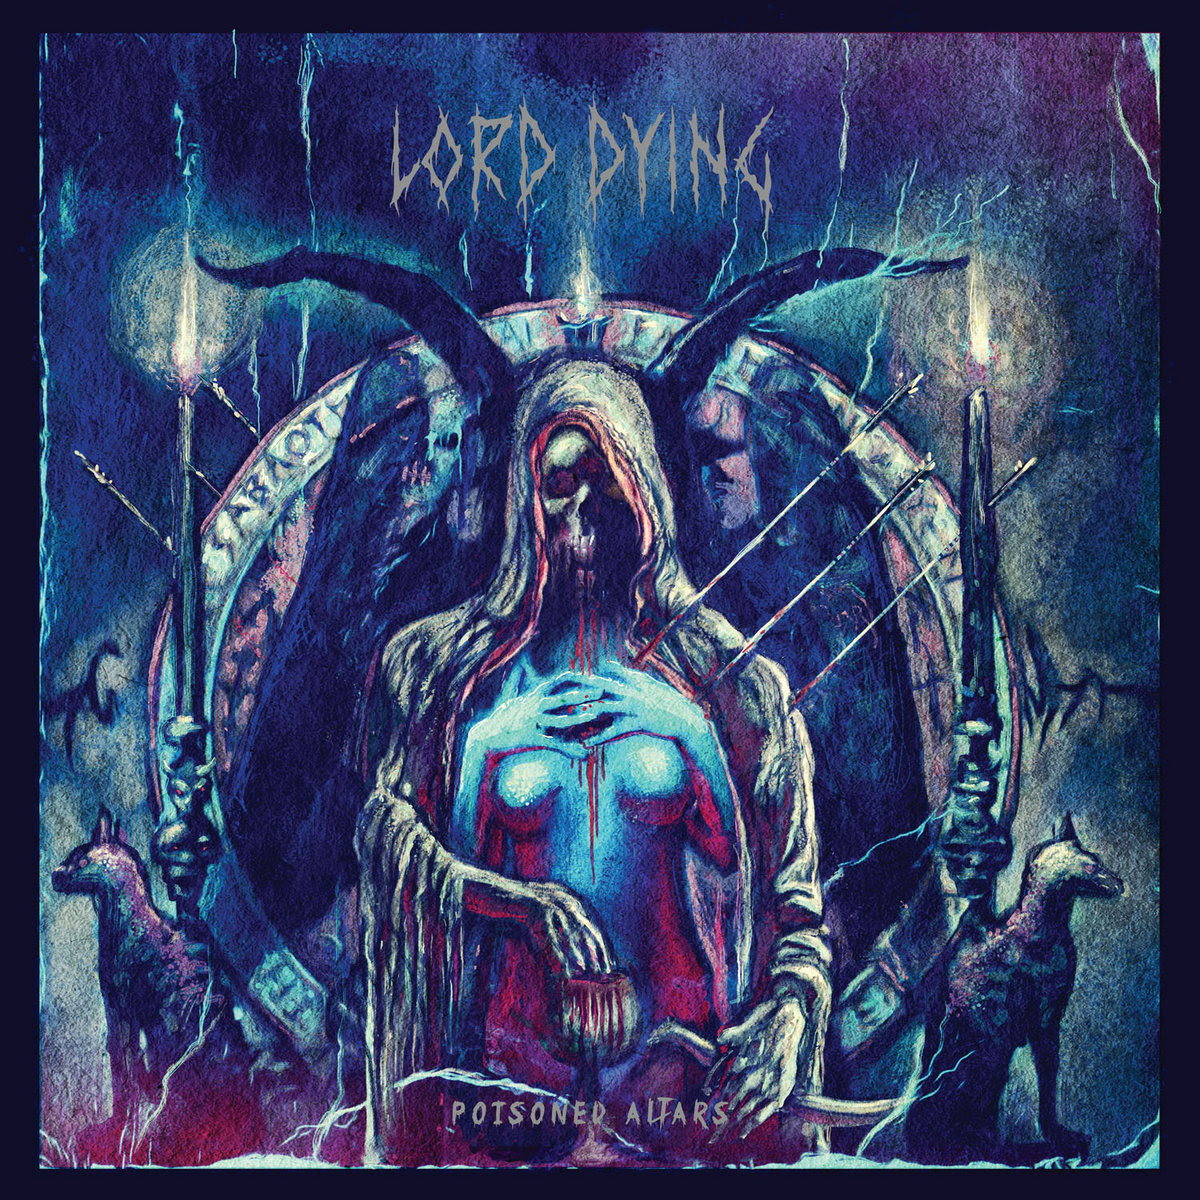 Lord Dying - Poisoned Altars (2015)